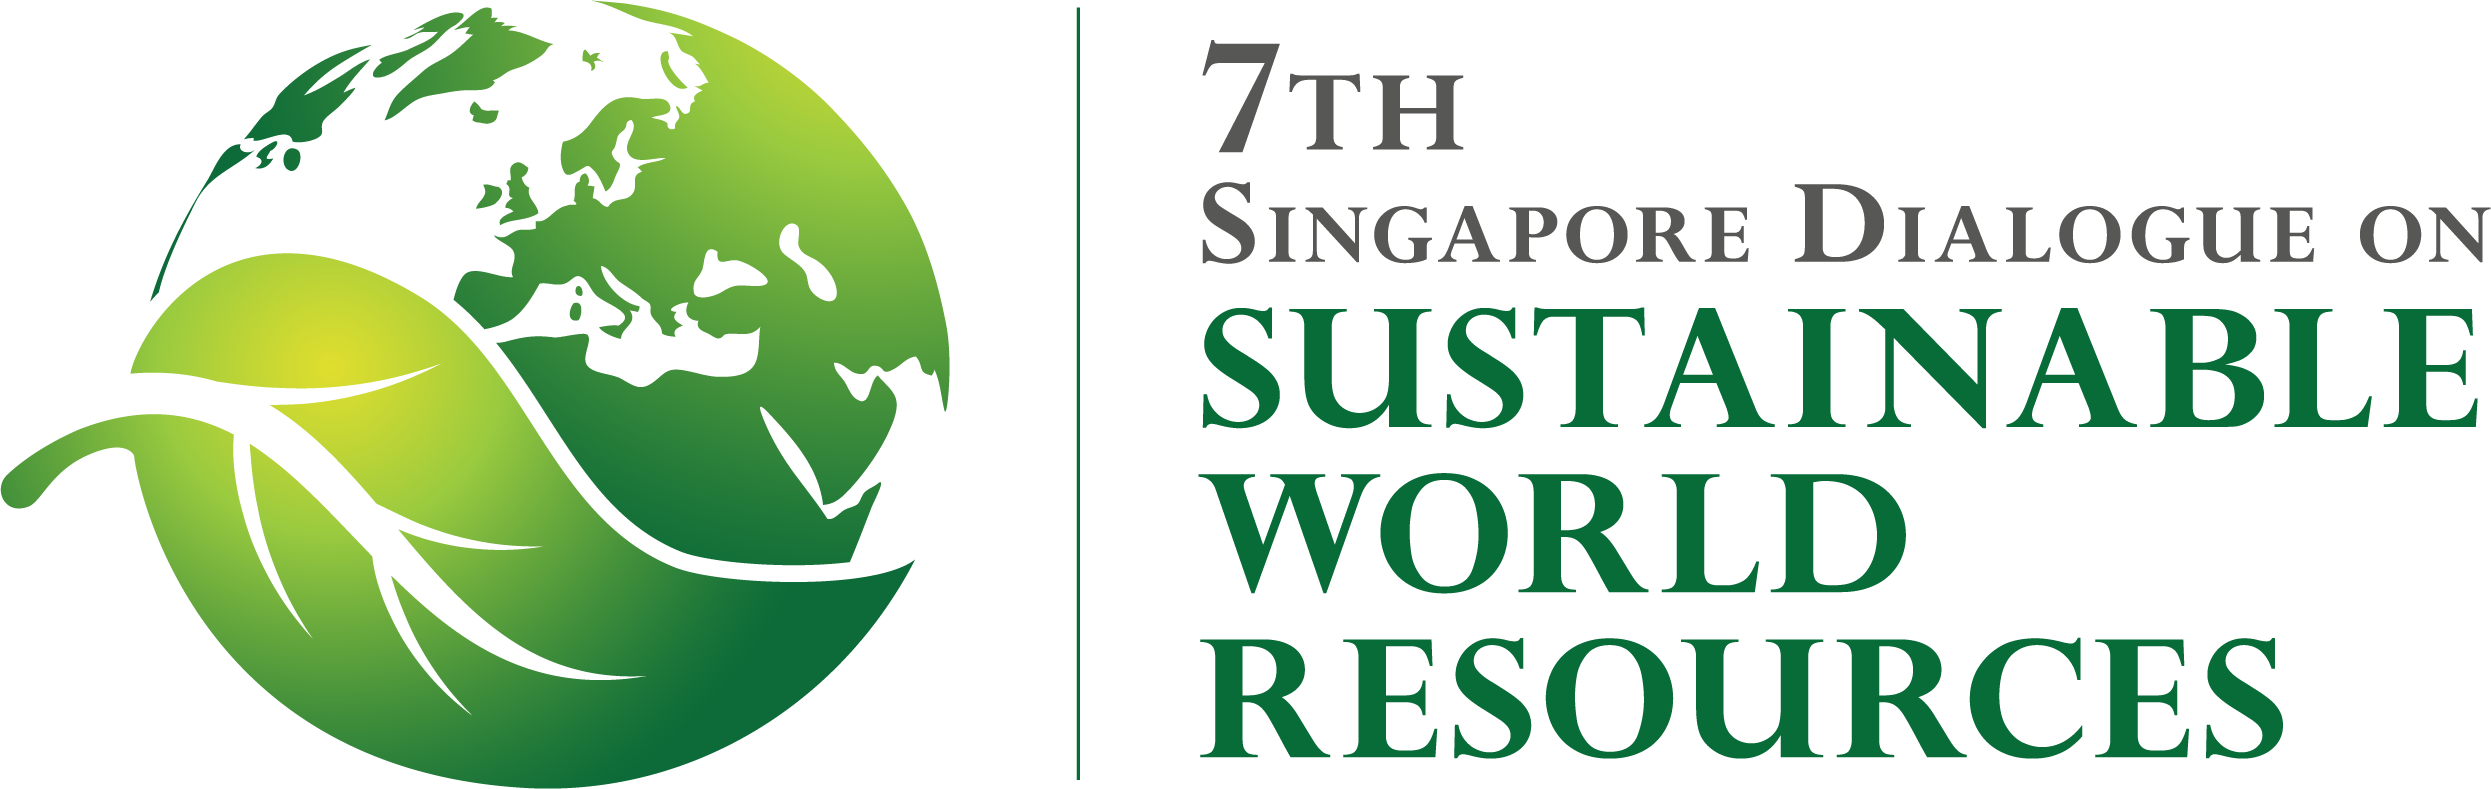 7th SWR 2020 LOGO_pathed-01